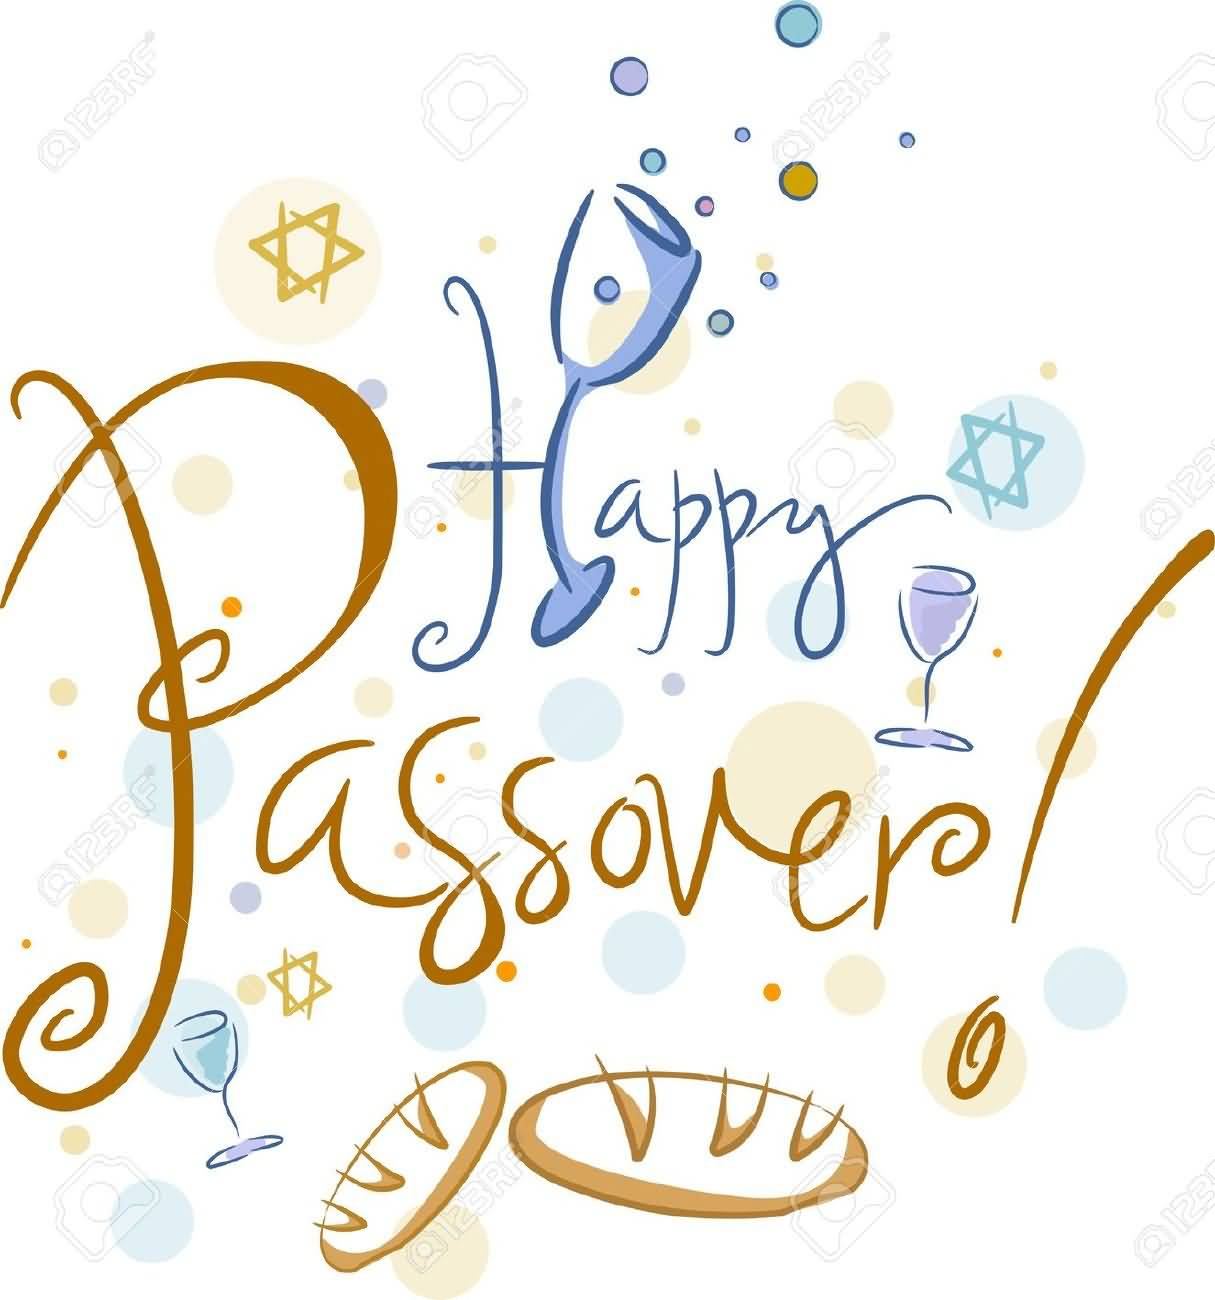 49-Happy Passover Wishes